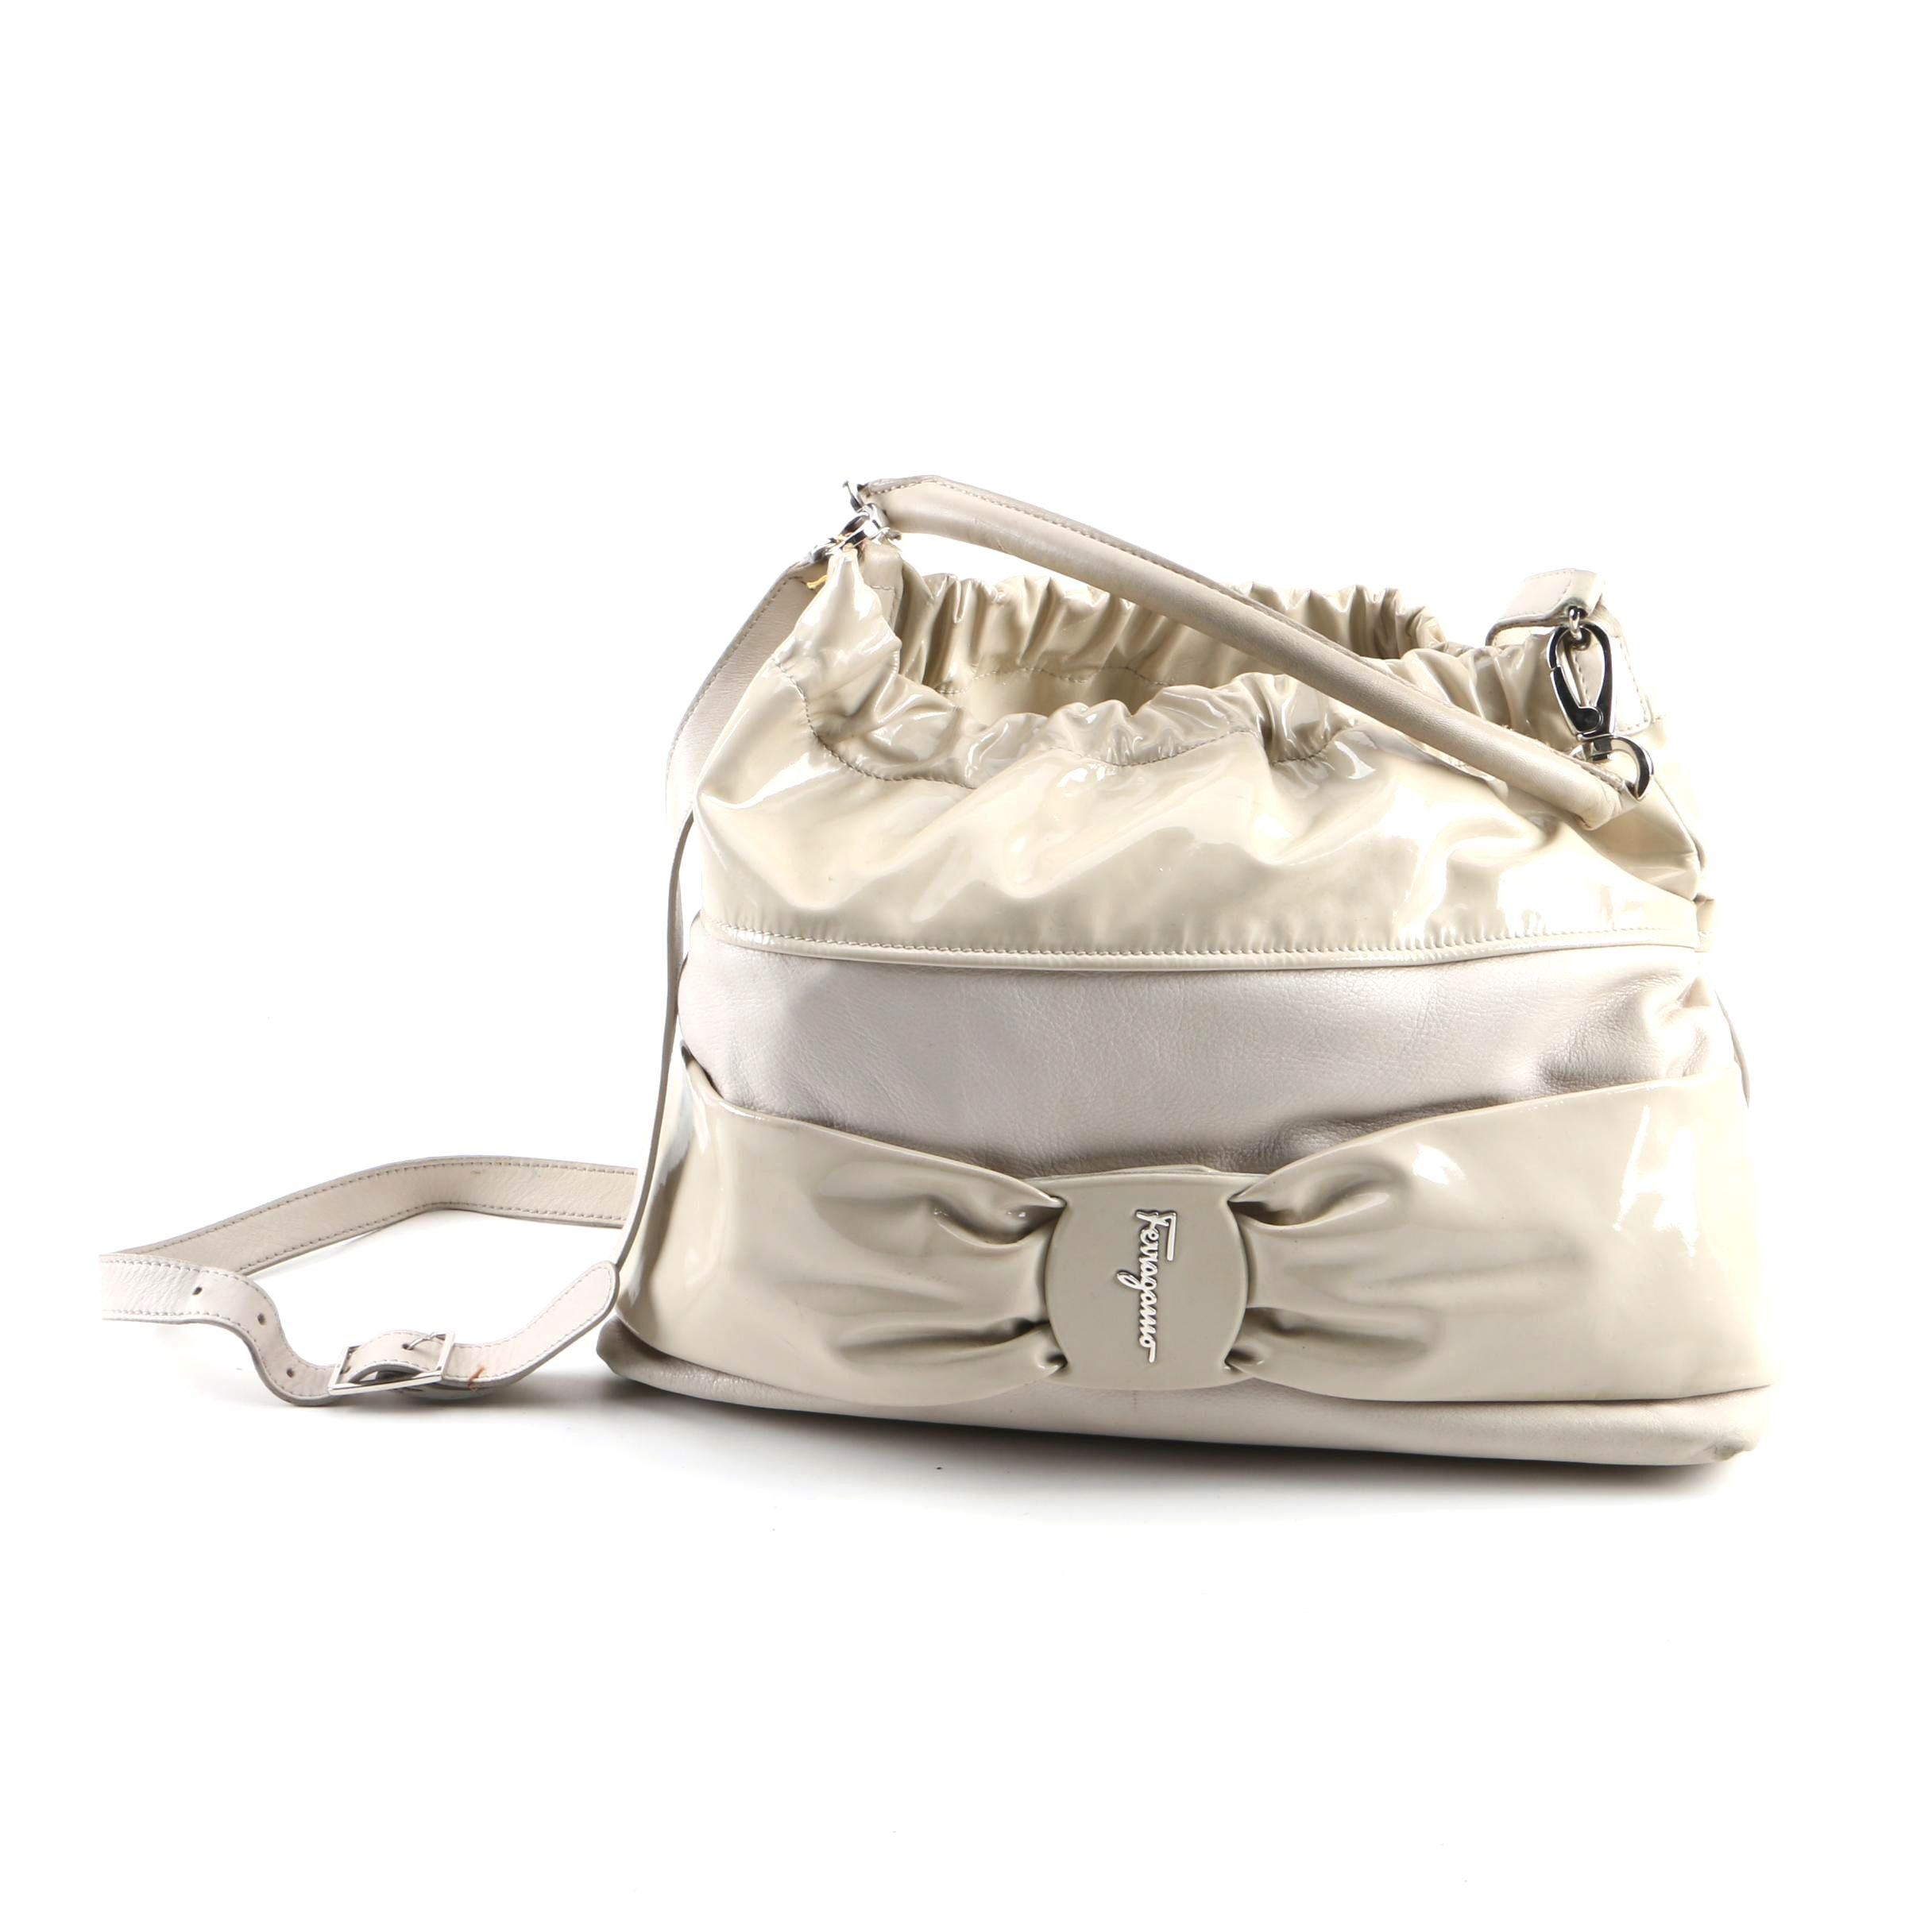 Salvatore Ferragamo Taupe Leather and Patent Leather Satchel